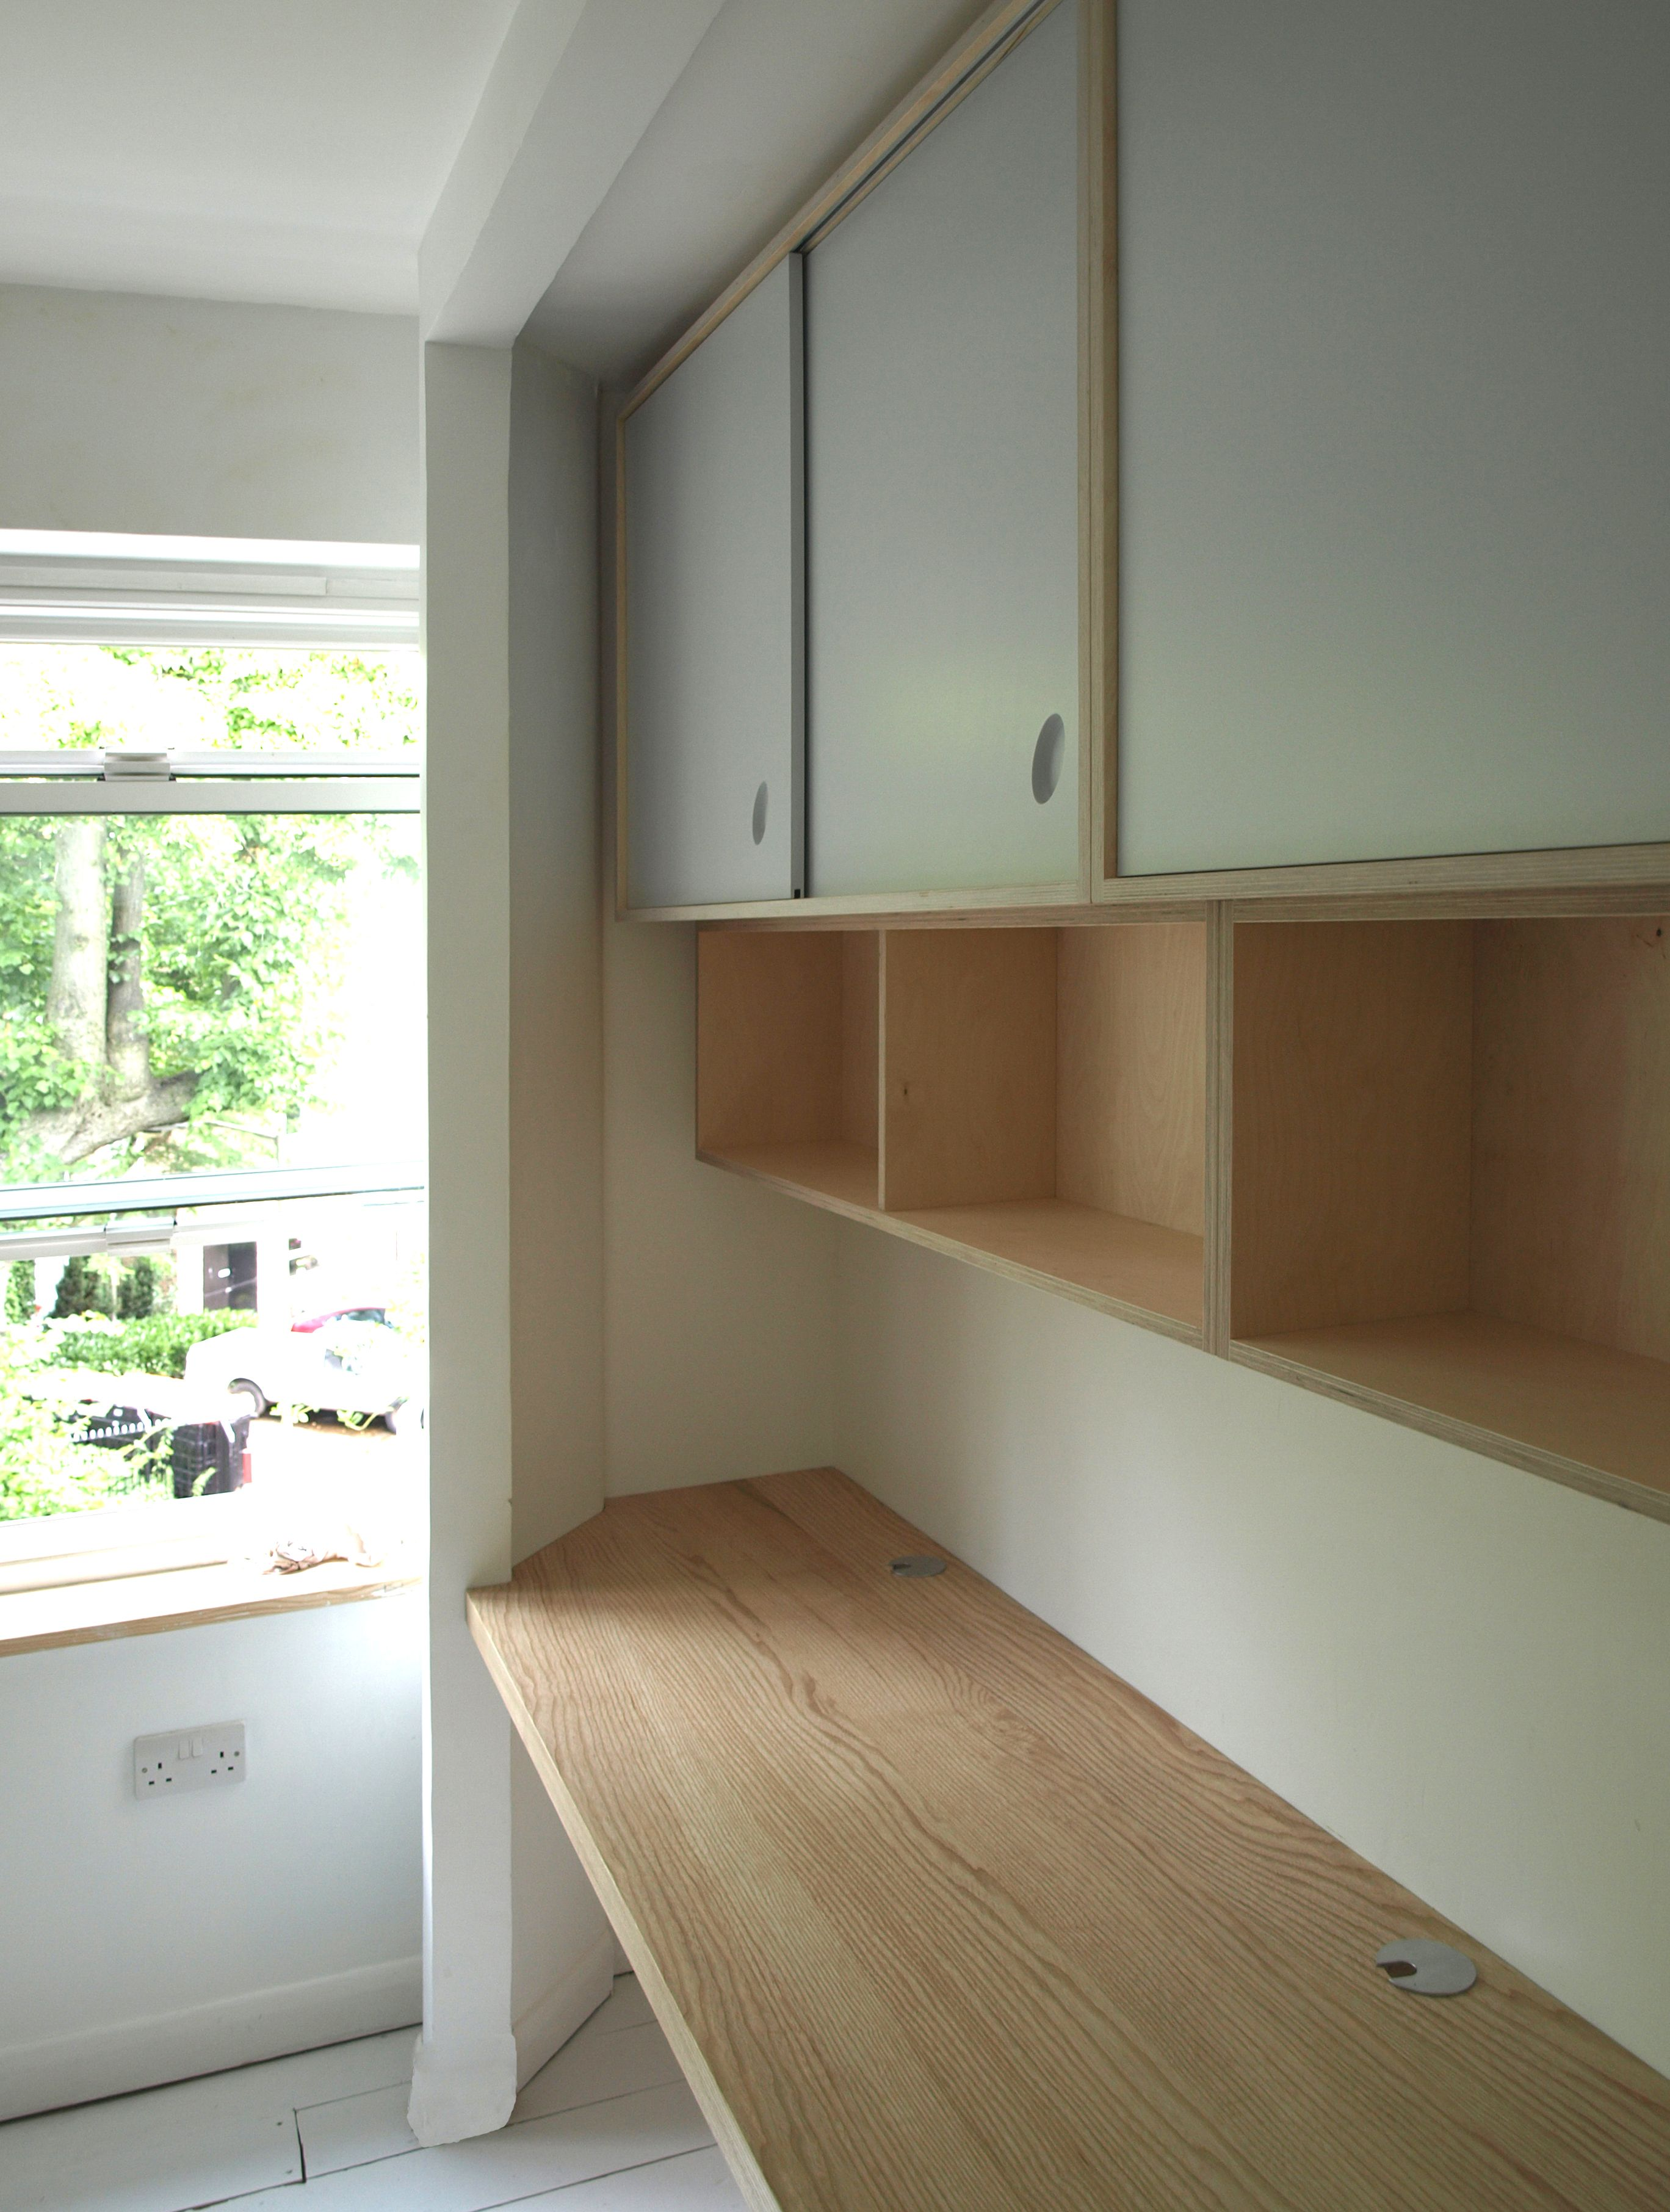 Wall Mounted Floating Birch Plywood Shelves And Cupboards With Painted Sliding Doors Desk In English As Plywood Shelves Plywood Wall Paneling Plywood Kitchen